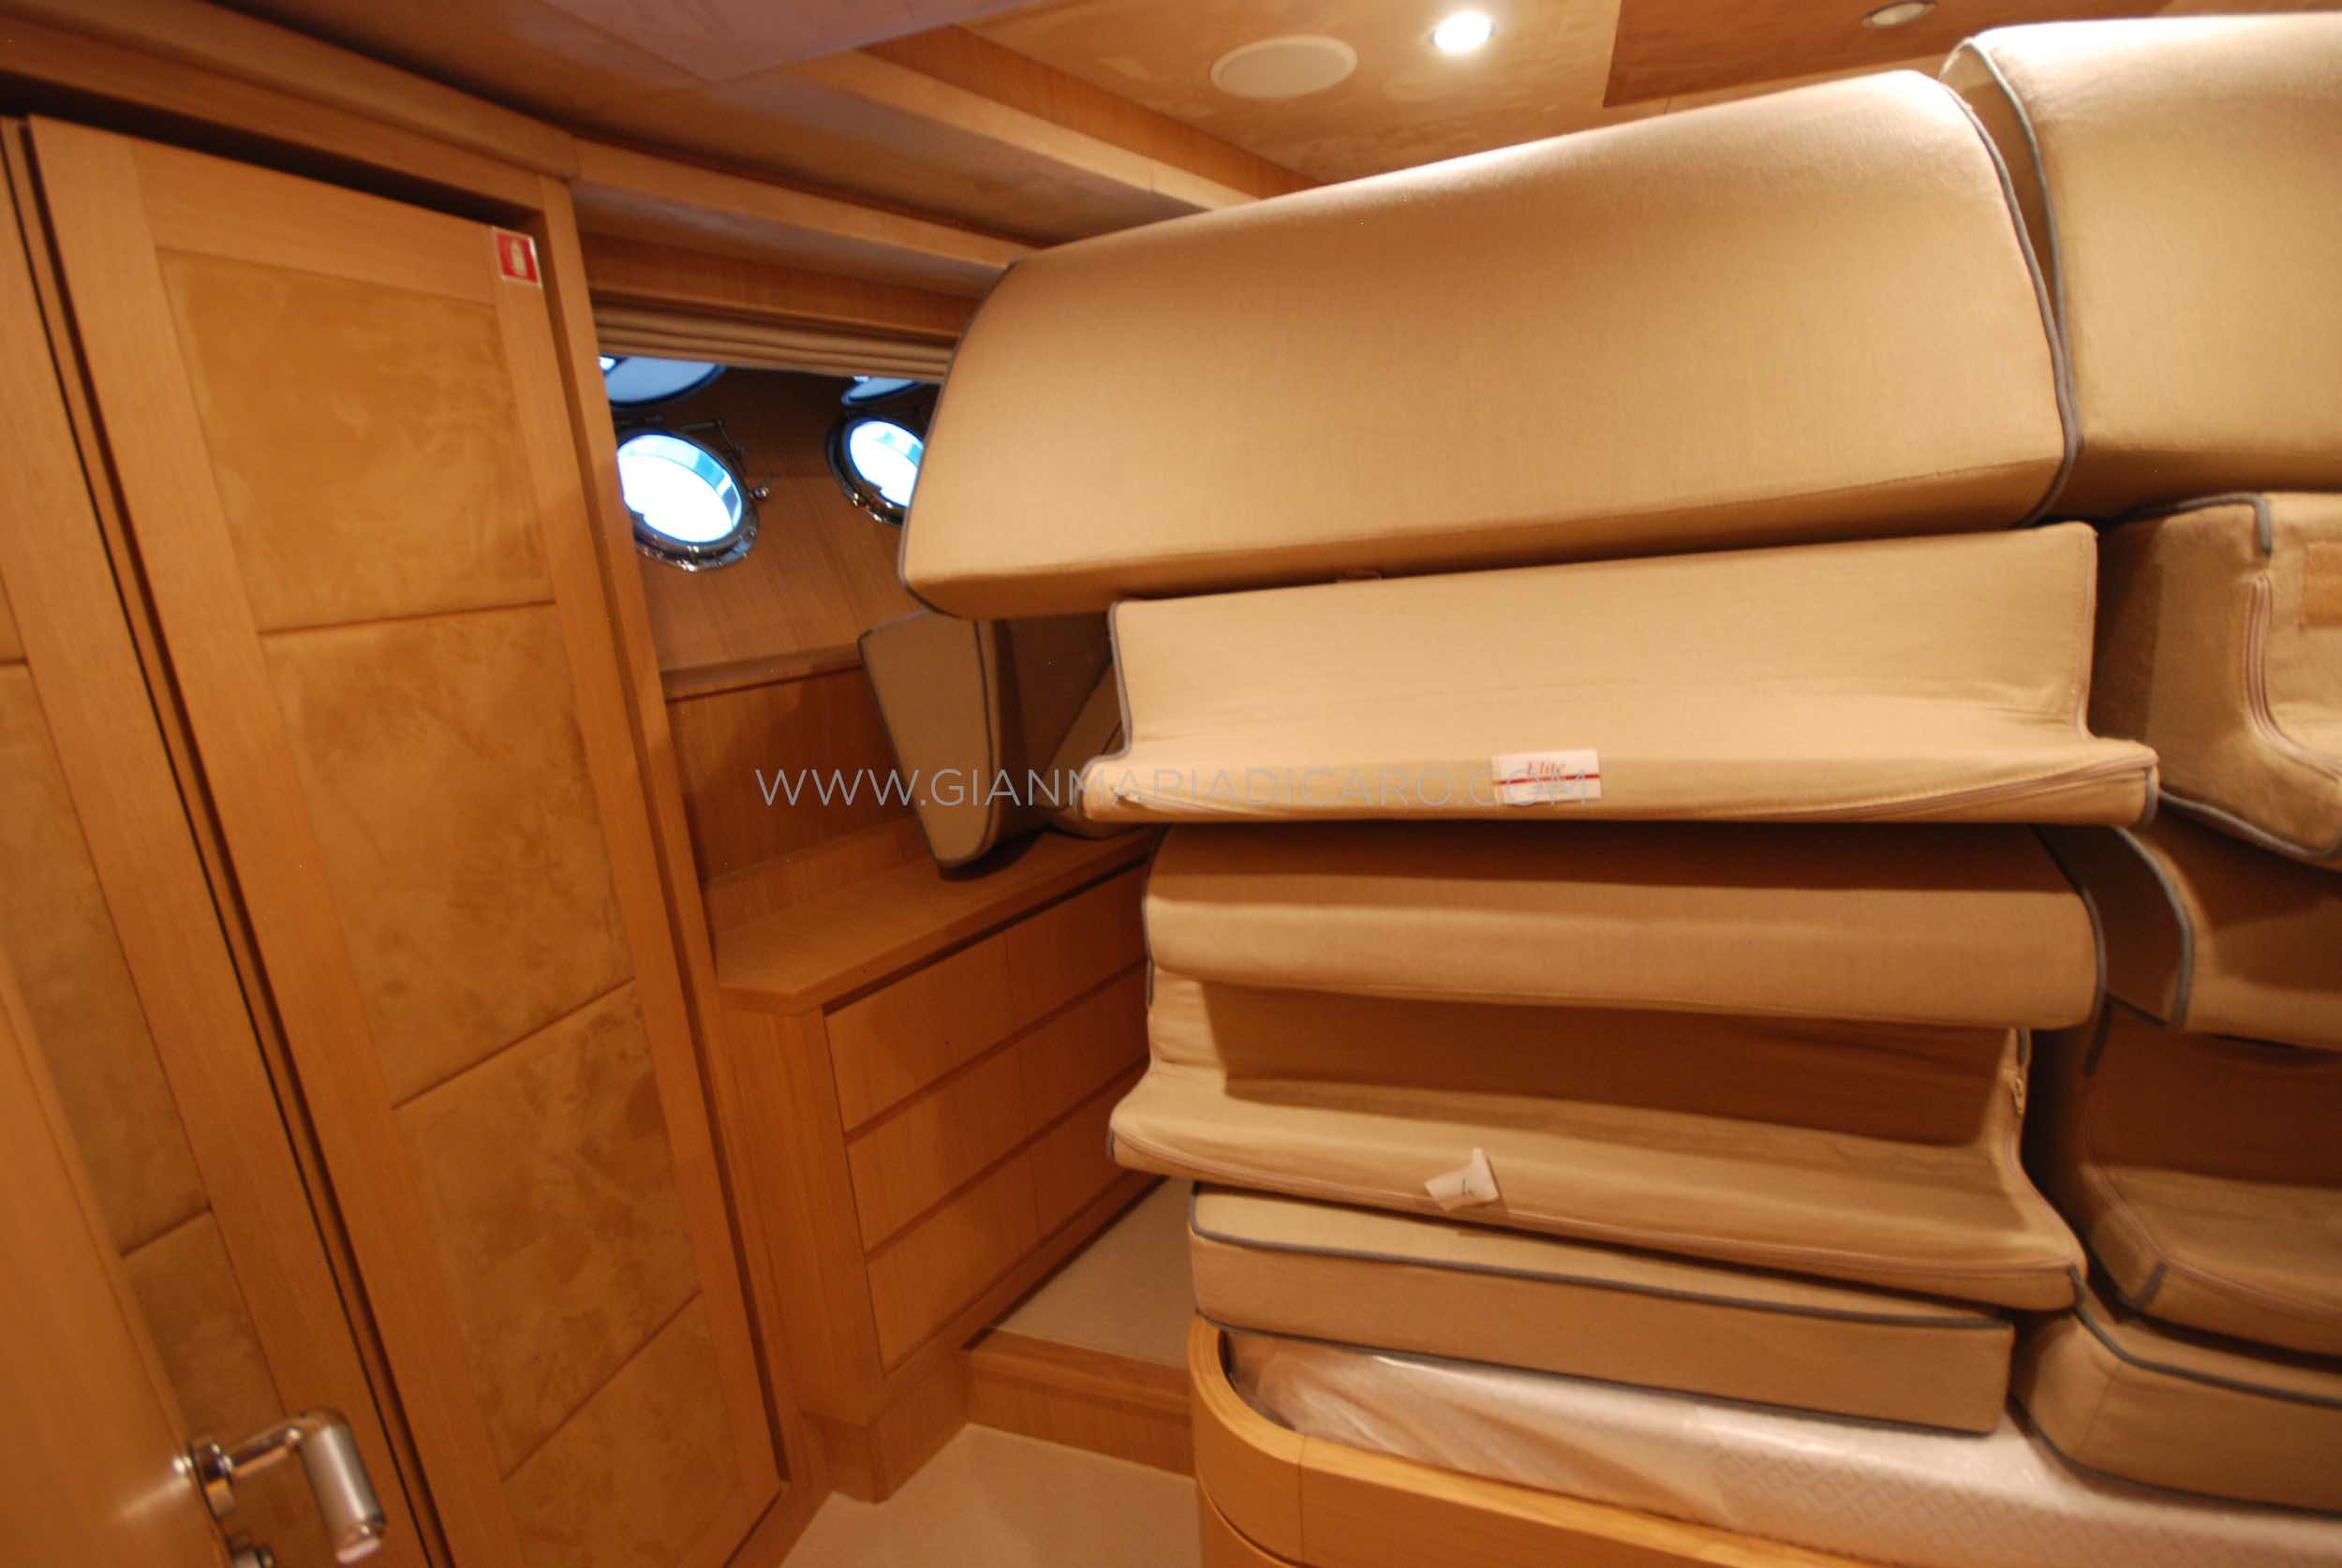 emys-yacht-22-unica-for-sale-164.jpg